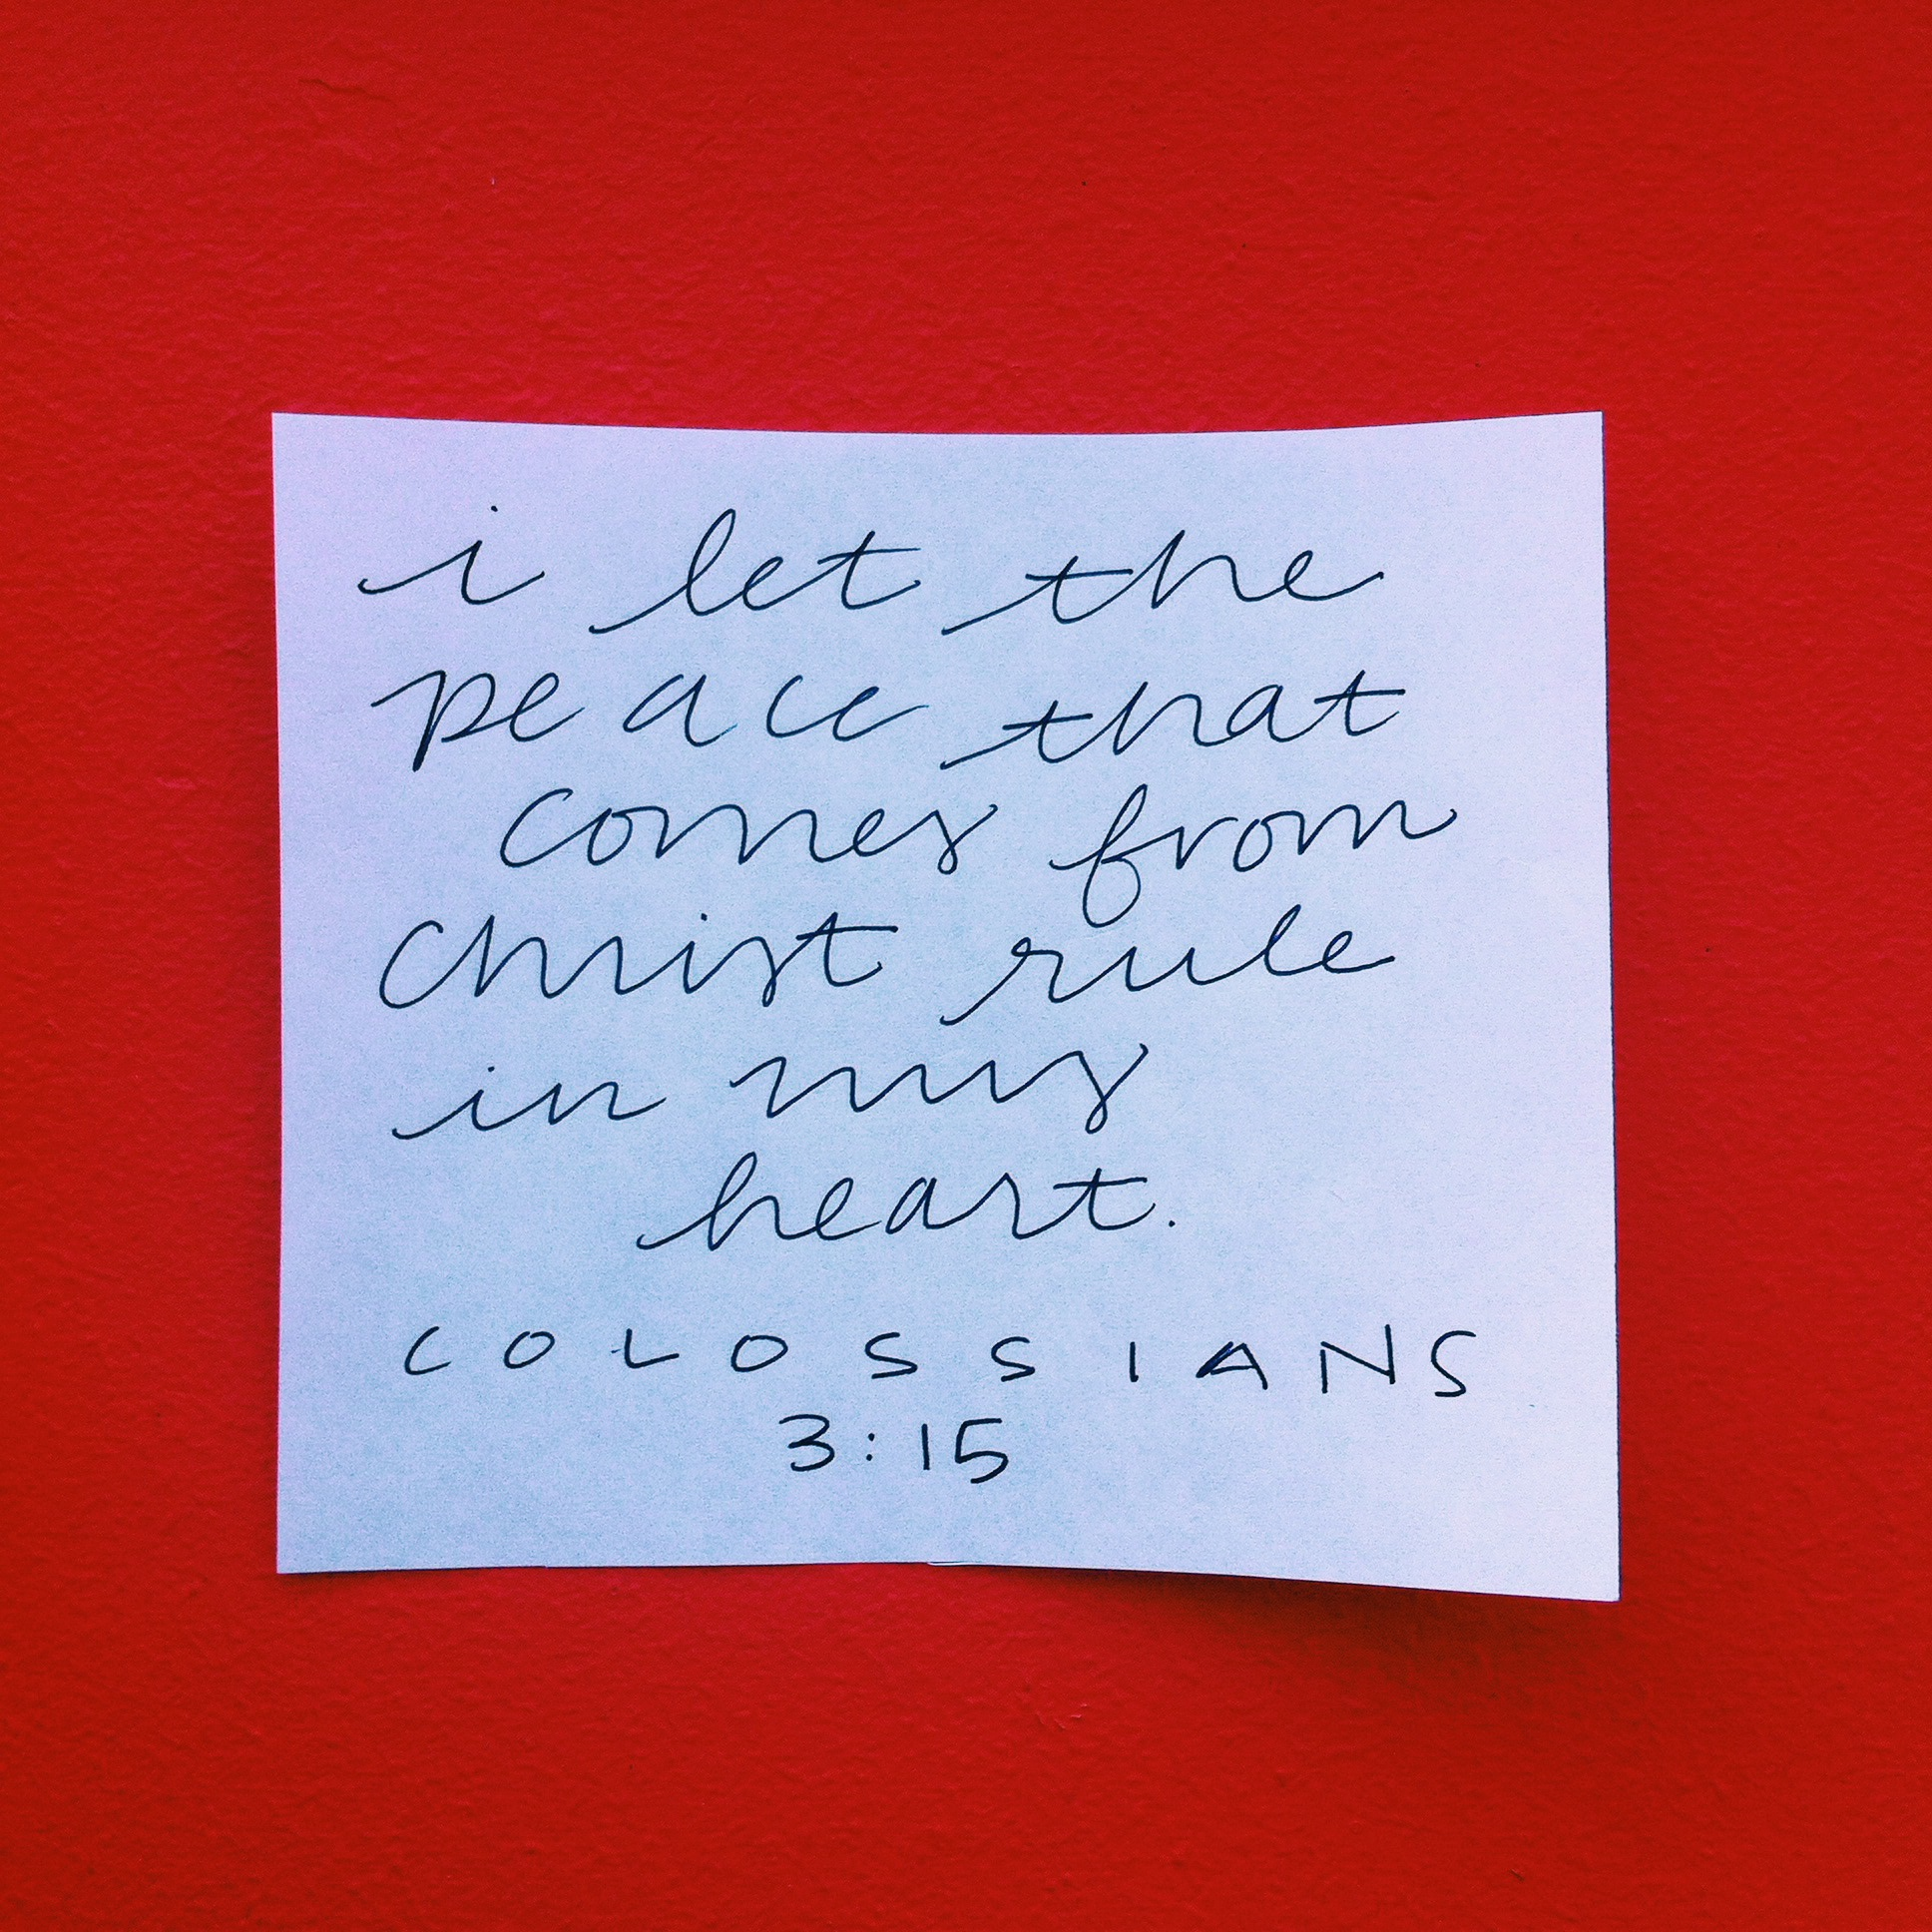 Colossians 3:15  I let the peace that comes from Christ rule in my heart.